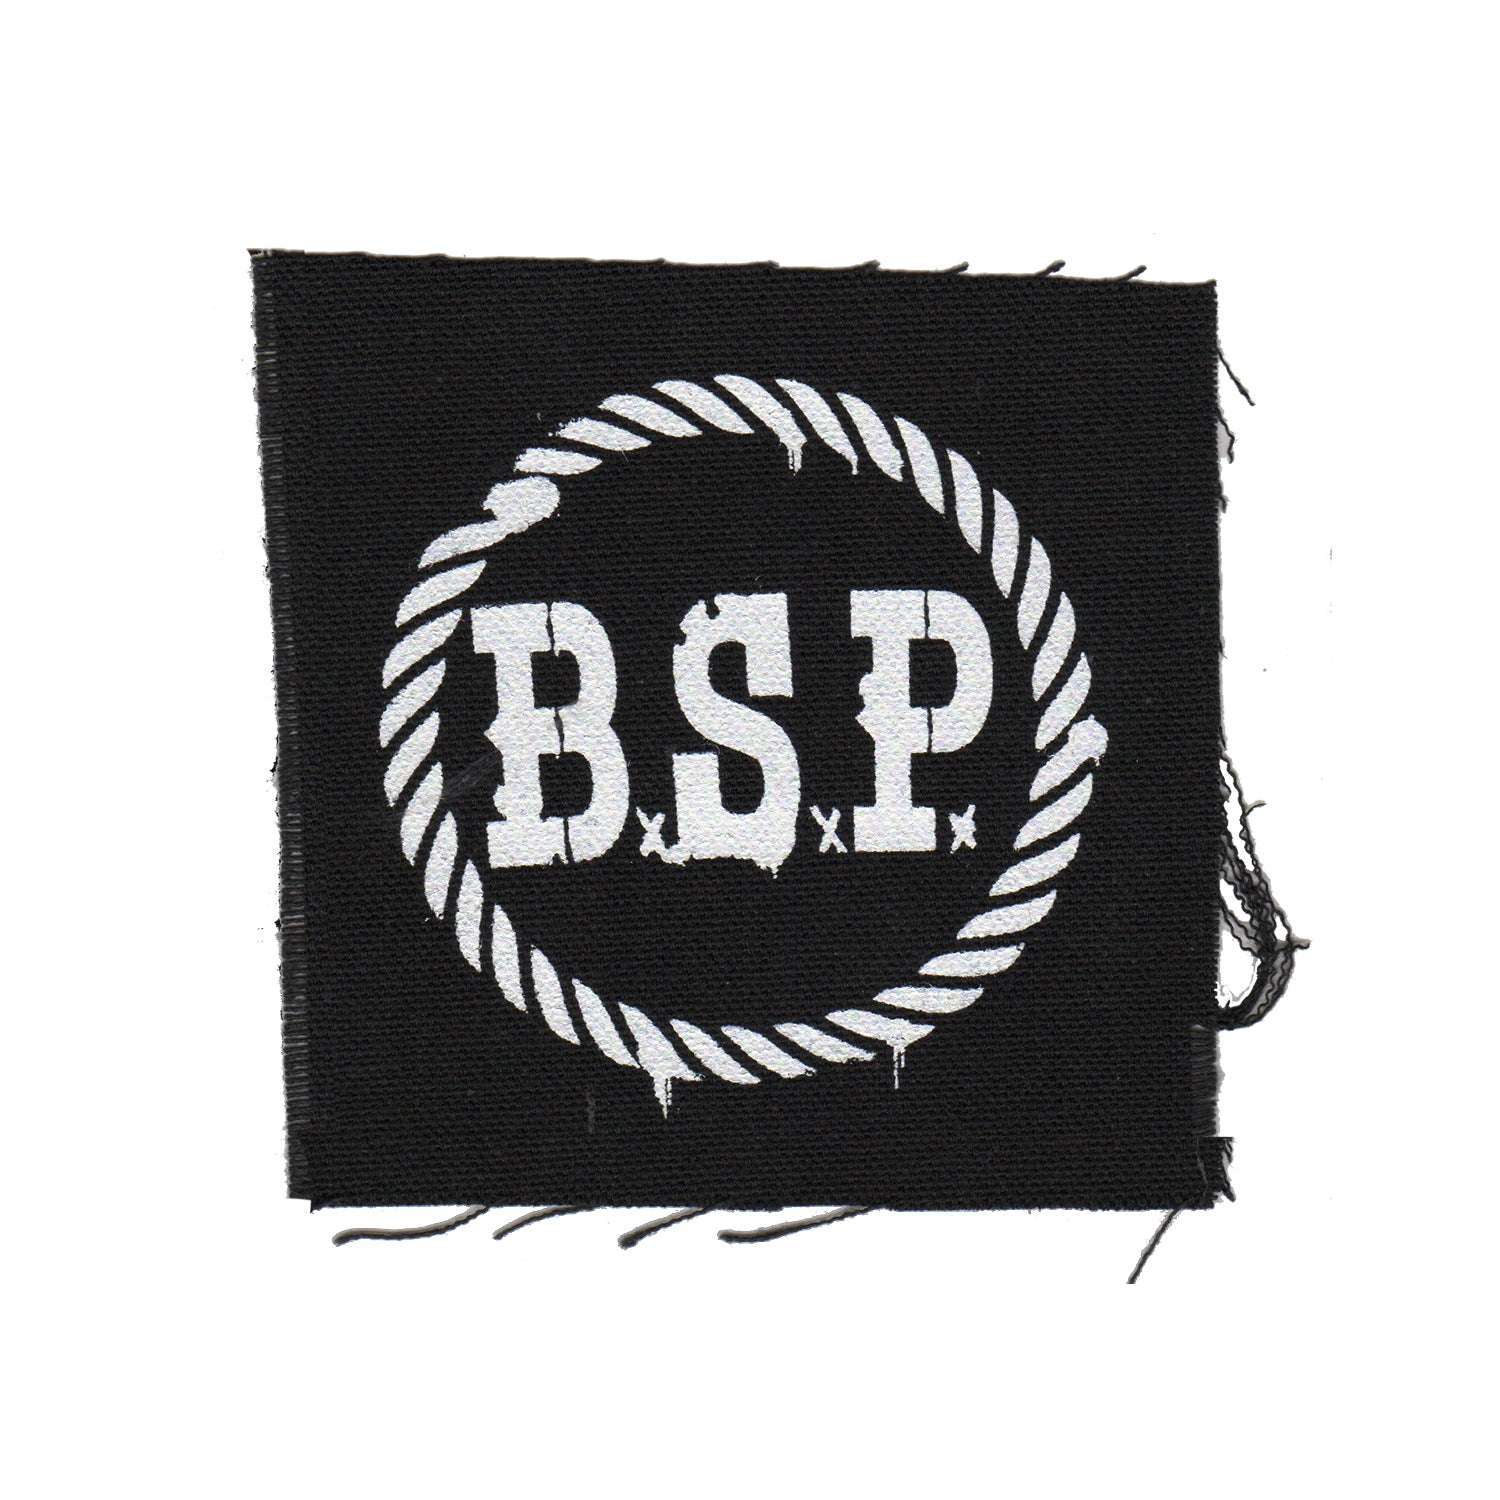 "The Bar Stool Preachers - BSP Stencil - Black - Patch - Cloth - Screenprinted - 4"" x 4"""